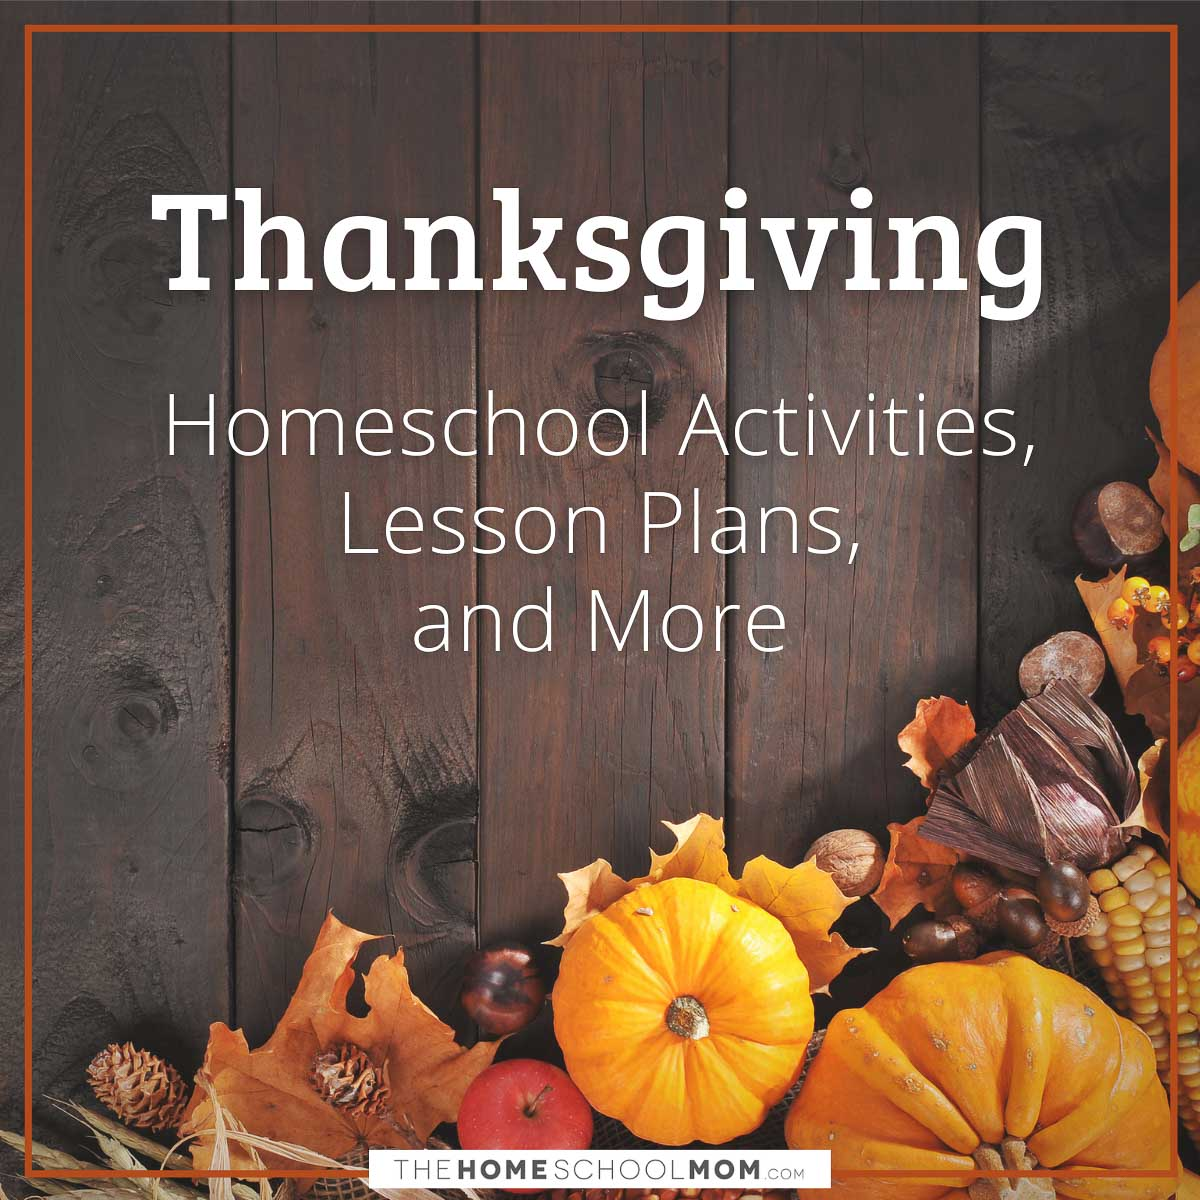 thanksgiving homeschool activities, lesson plans, and more - thehomeschoolmom.com